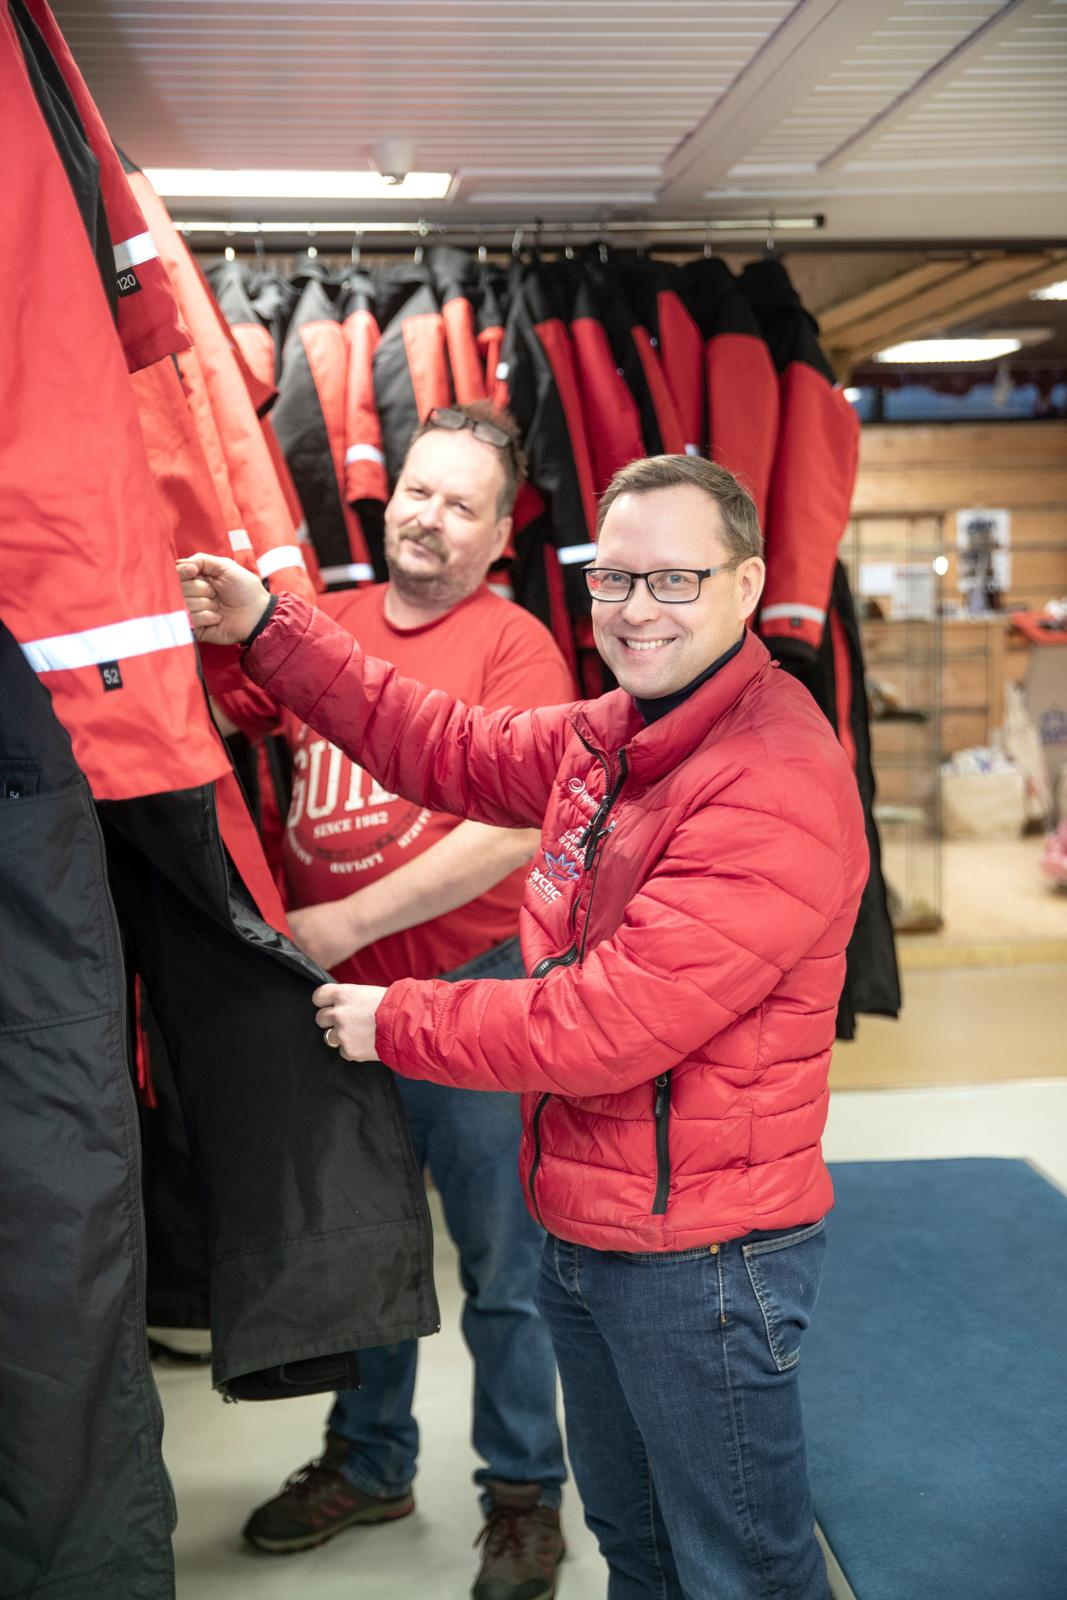 Risto Vuento and Rami Korhonen in the equipment storage room. Image: Kaisa Sirén